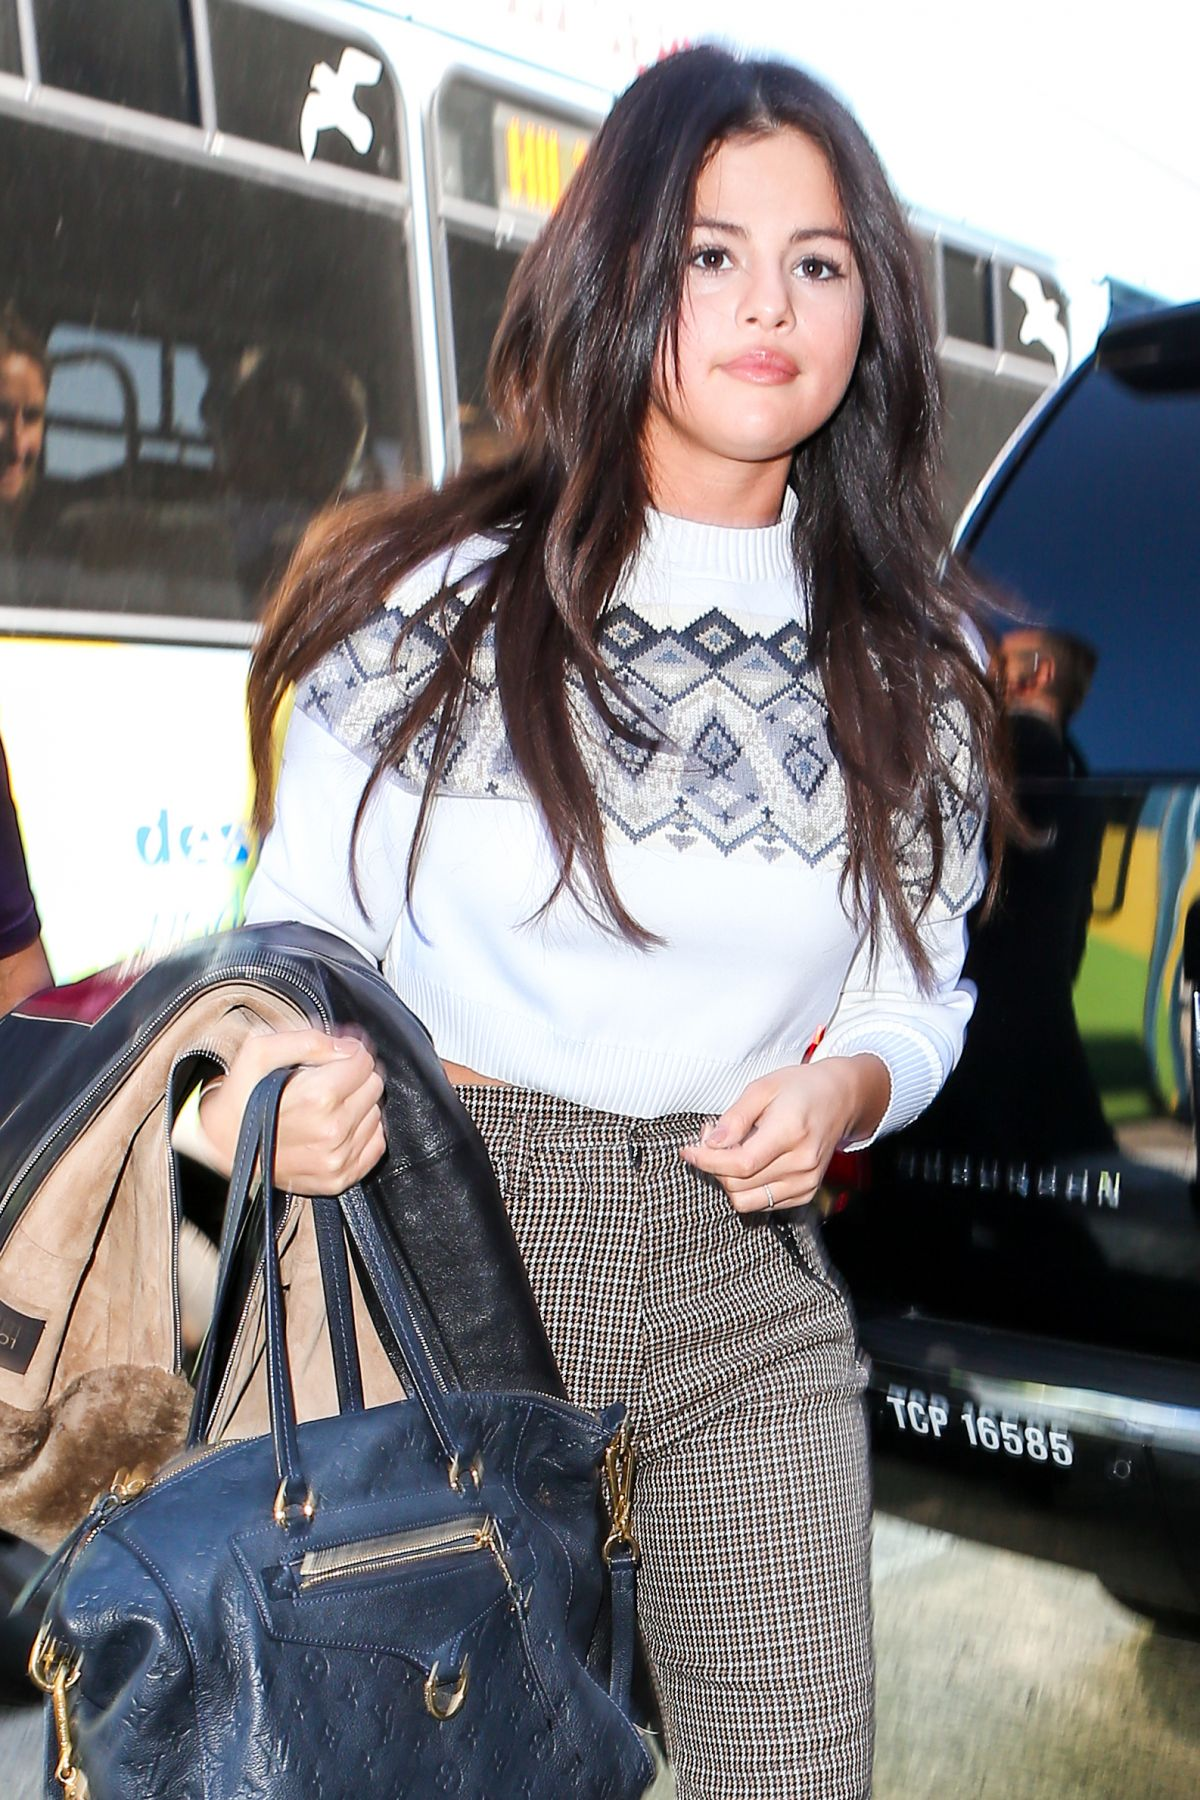 SELENA GOMEZ Departing from LAX Airport in Los Angeles 0903